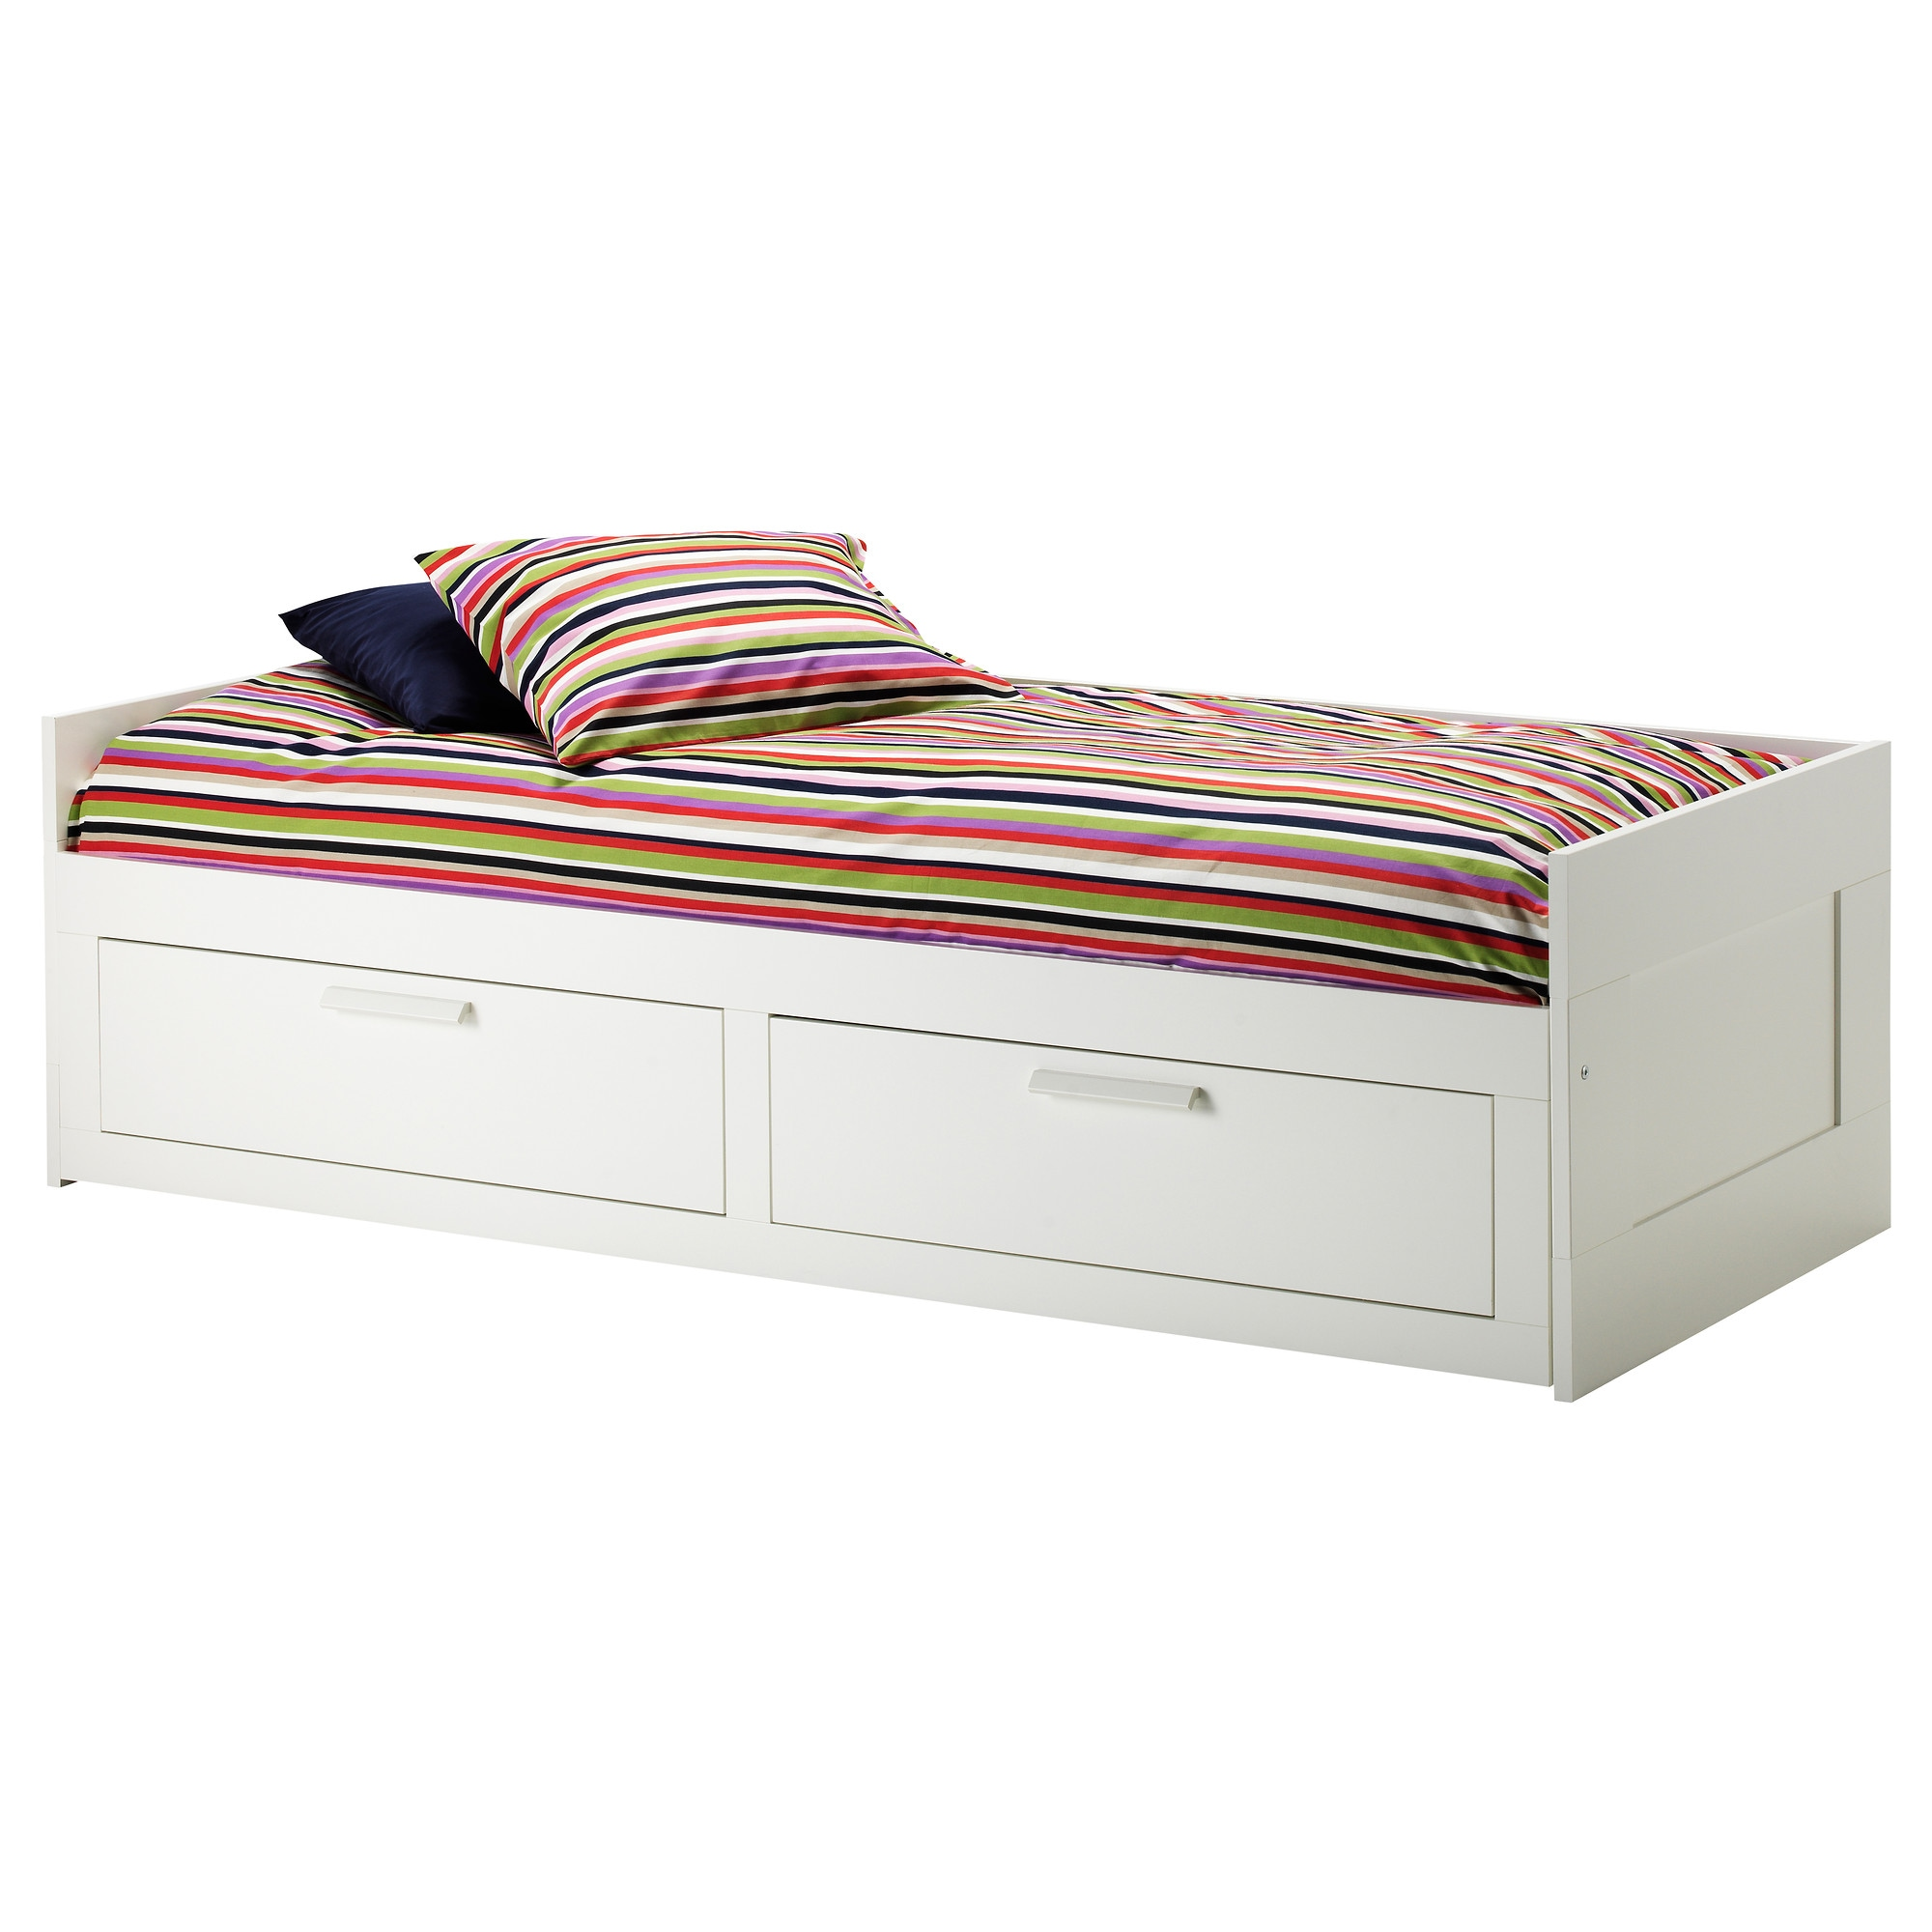 the ignite of mattress ikea storage inspirational amp w bed brimnes in double lovely built white hovag show